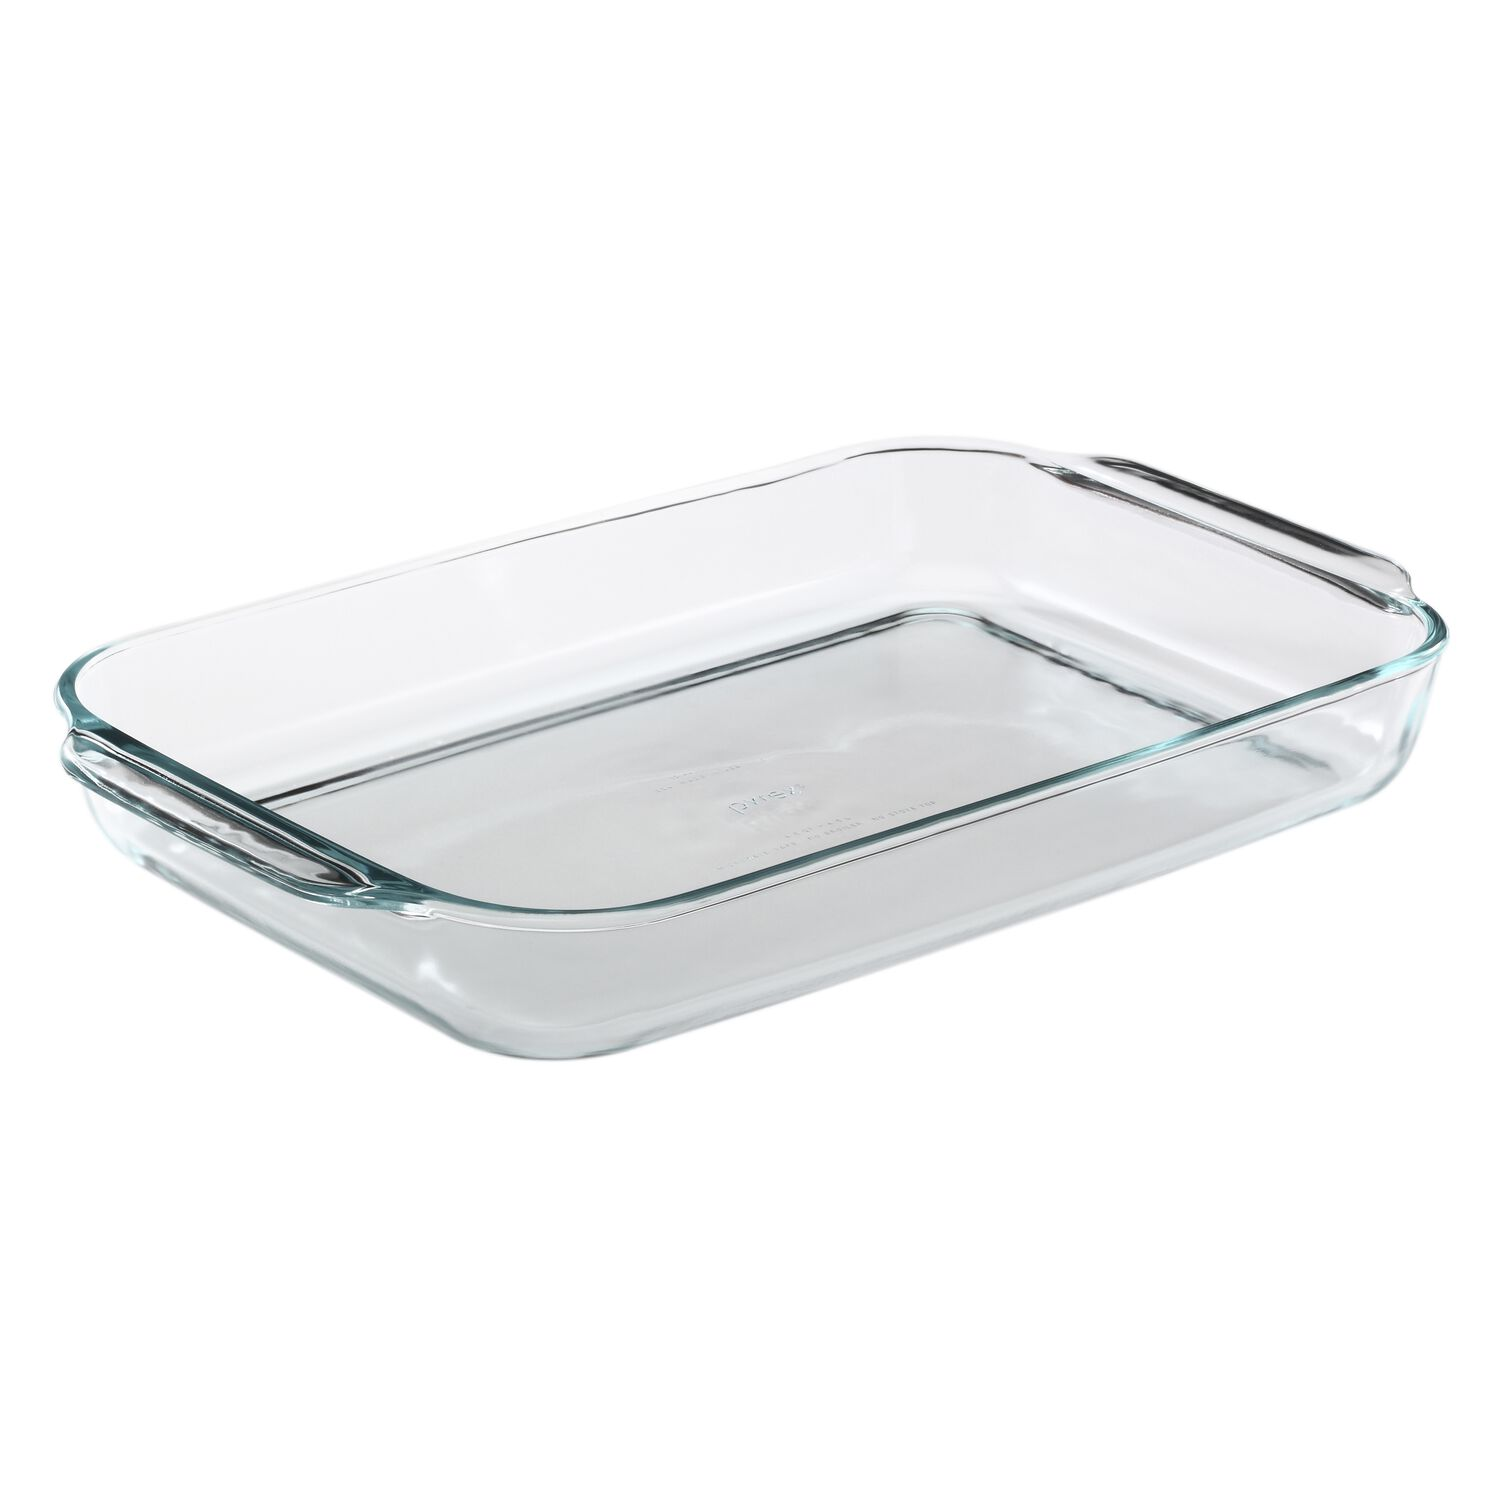 Can You Bake A Cake In A Glass Baking Dish